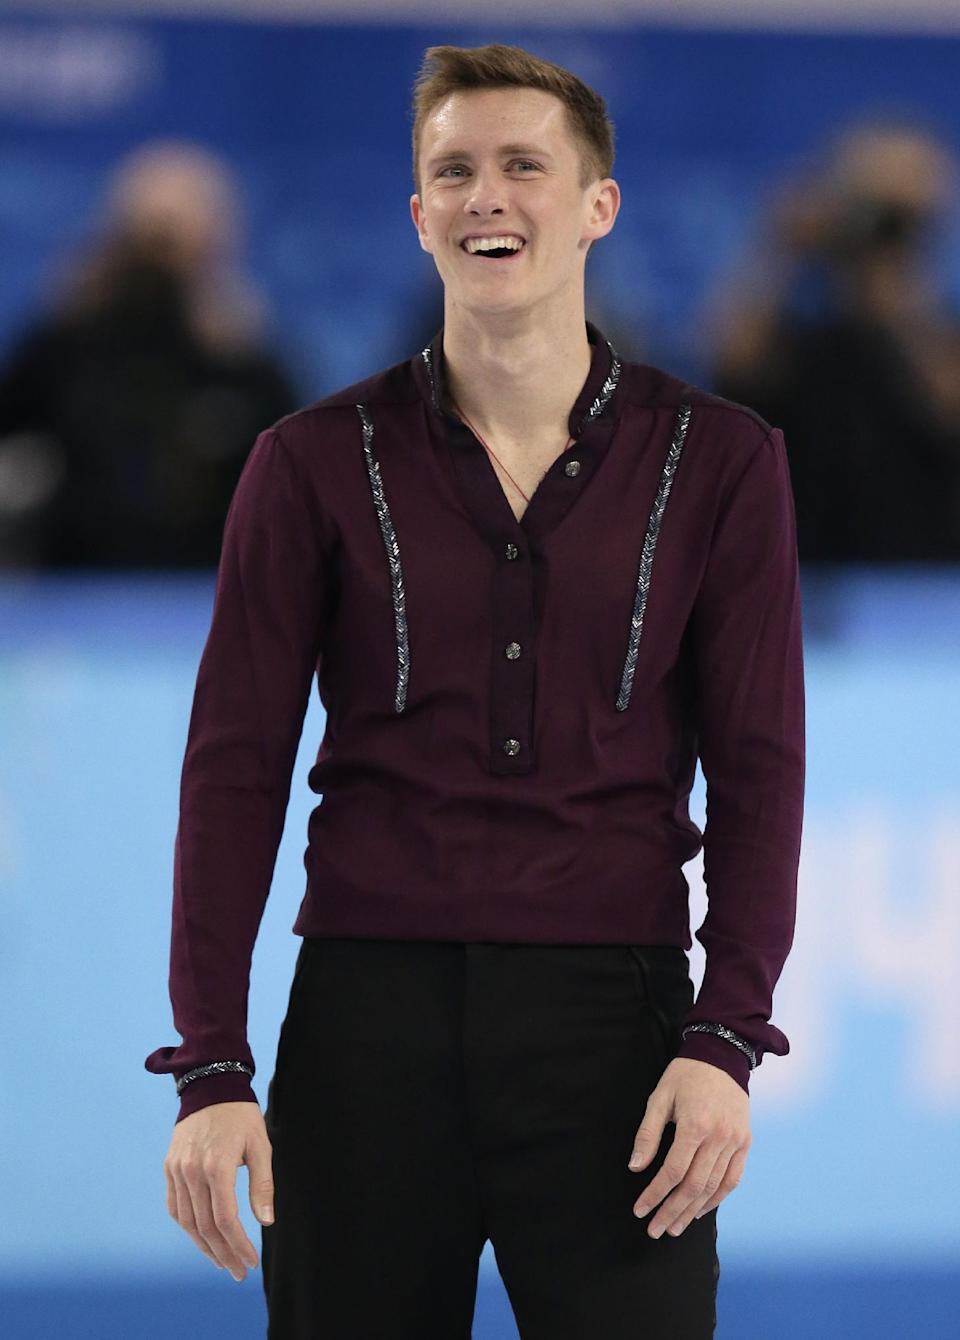 Jeremy Abbott of the United States reacts after finishing his routine in the men's short program figure skating competition at the Iceberg Skating Palace during the 2014 Winter Olympics, Thursday, Feb. 13, 2014, in Sochi, Russia. (AP Photo/Bernat Armangue)